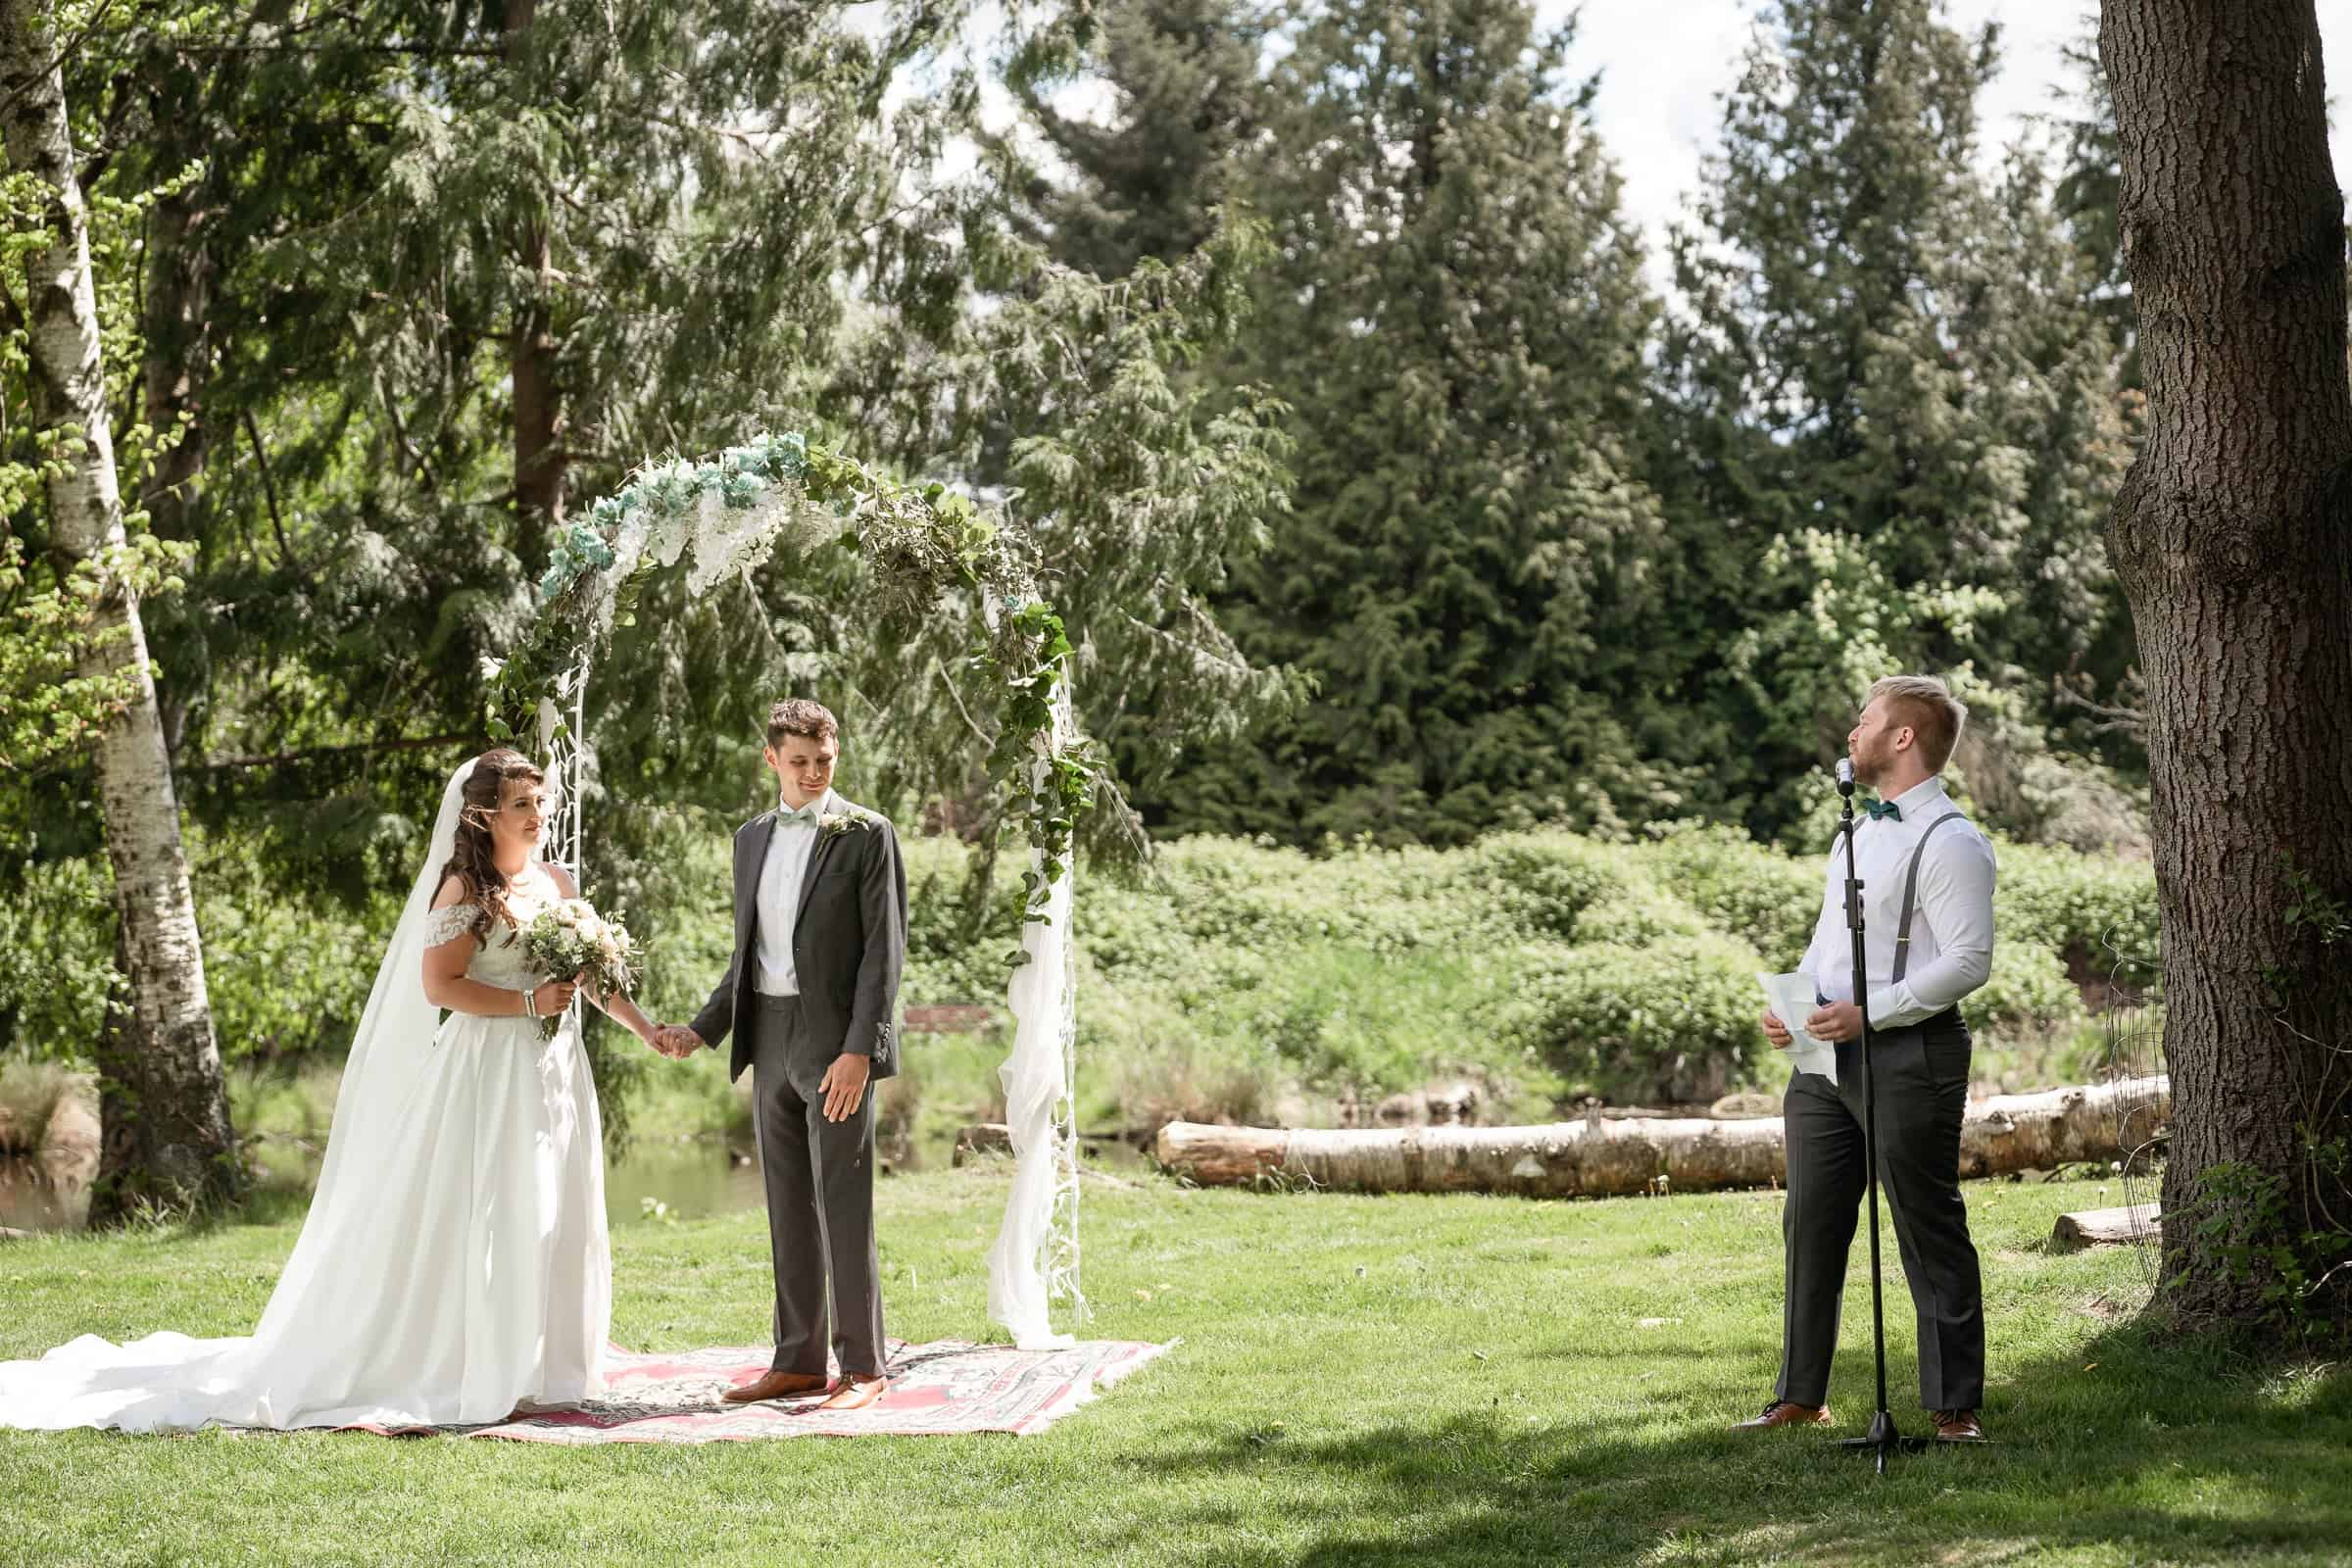 best man reading speech to bride and groom at ceremony